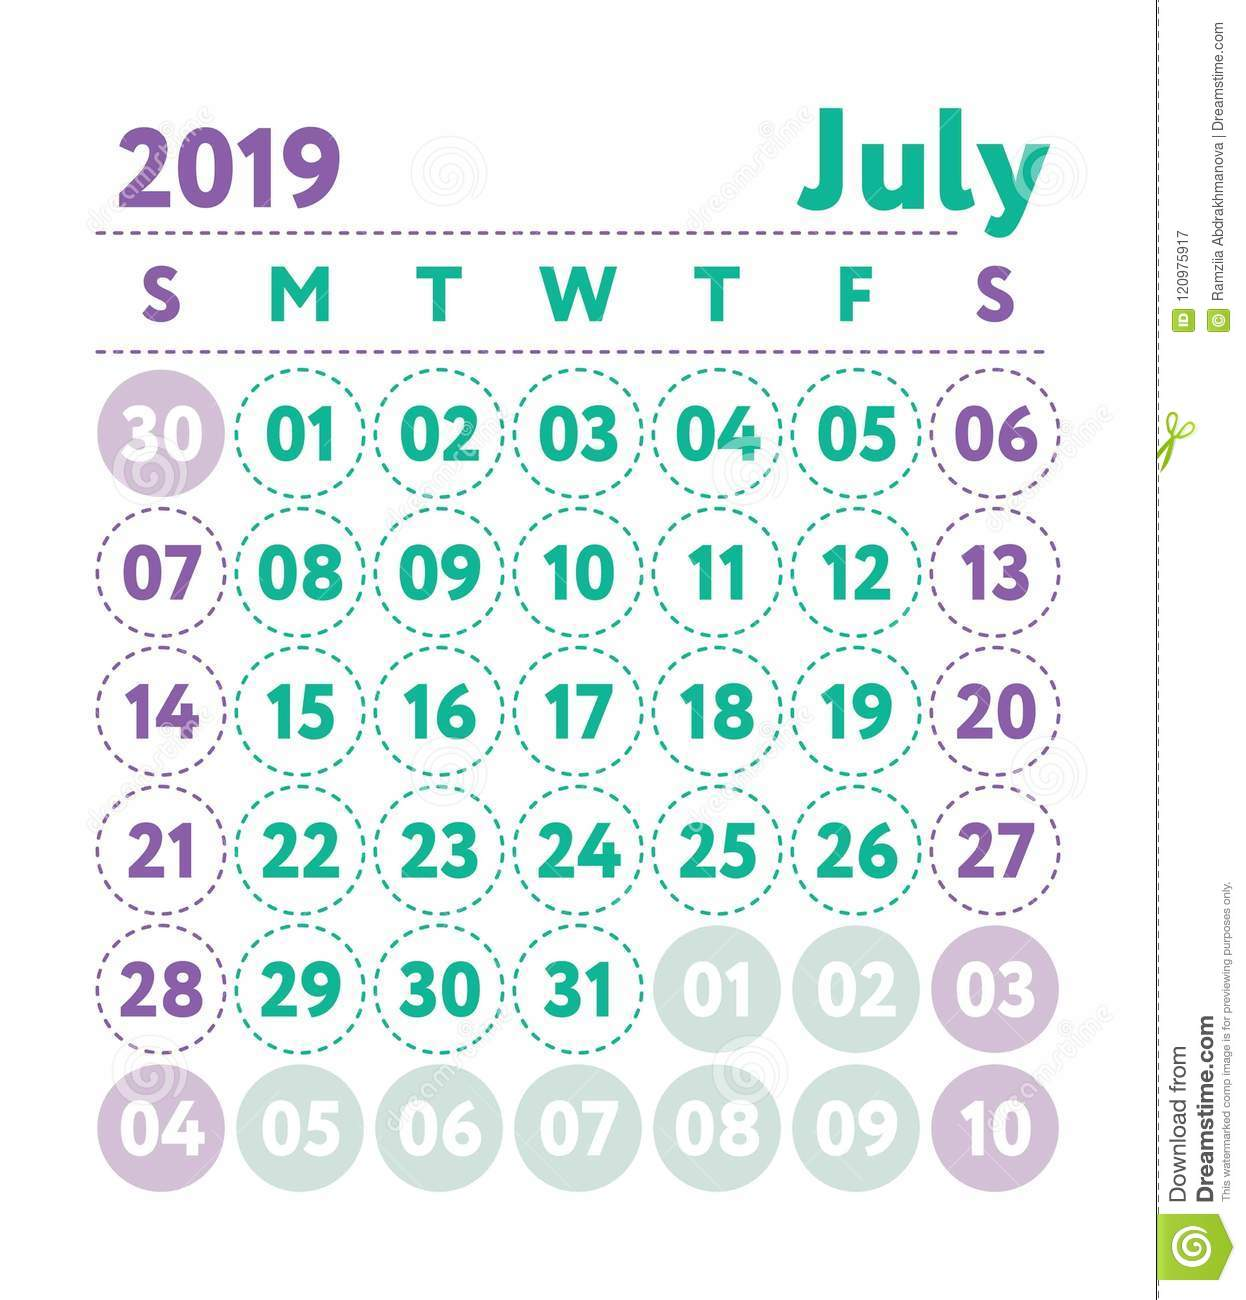 Calendario Julio 2019 Vector.Calendar 2019 Vector English Calender July Month Week